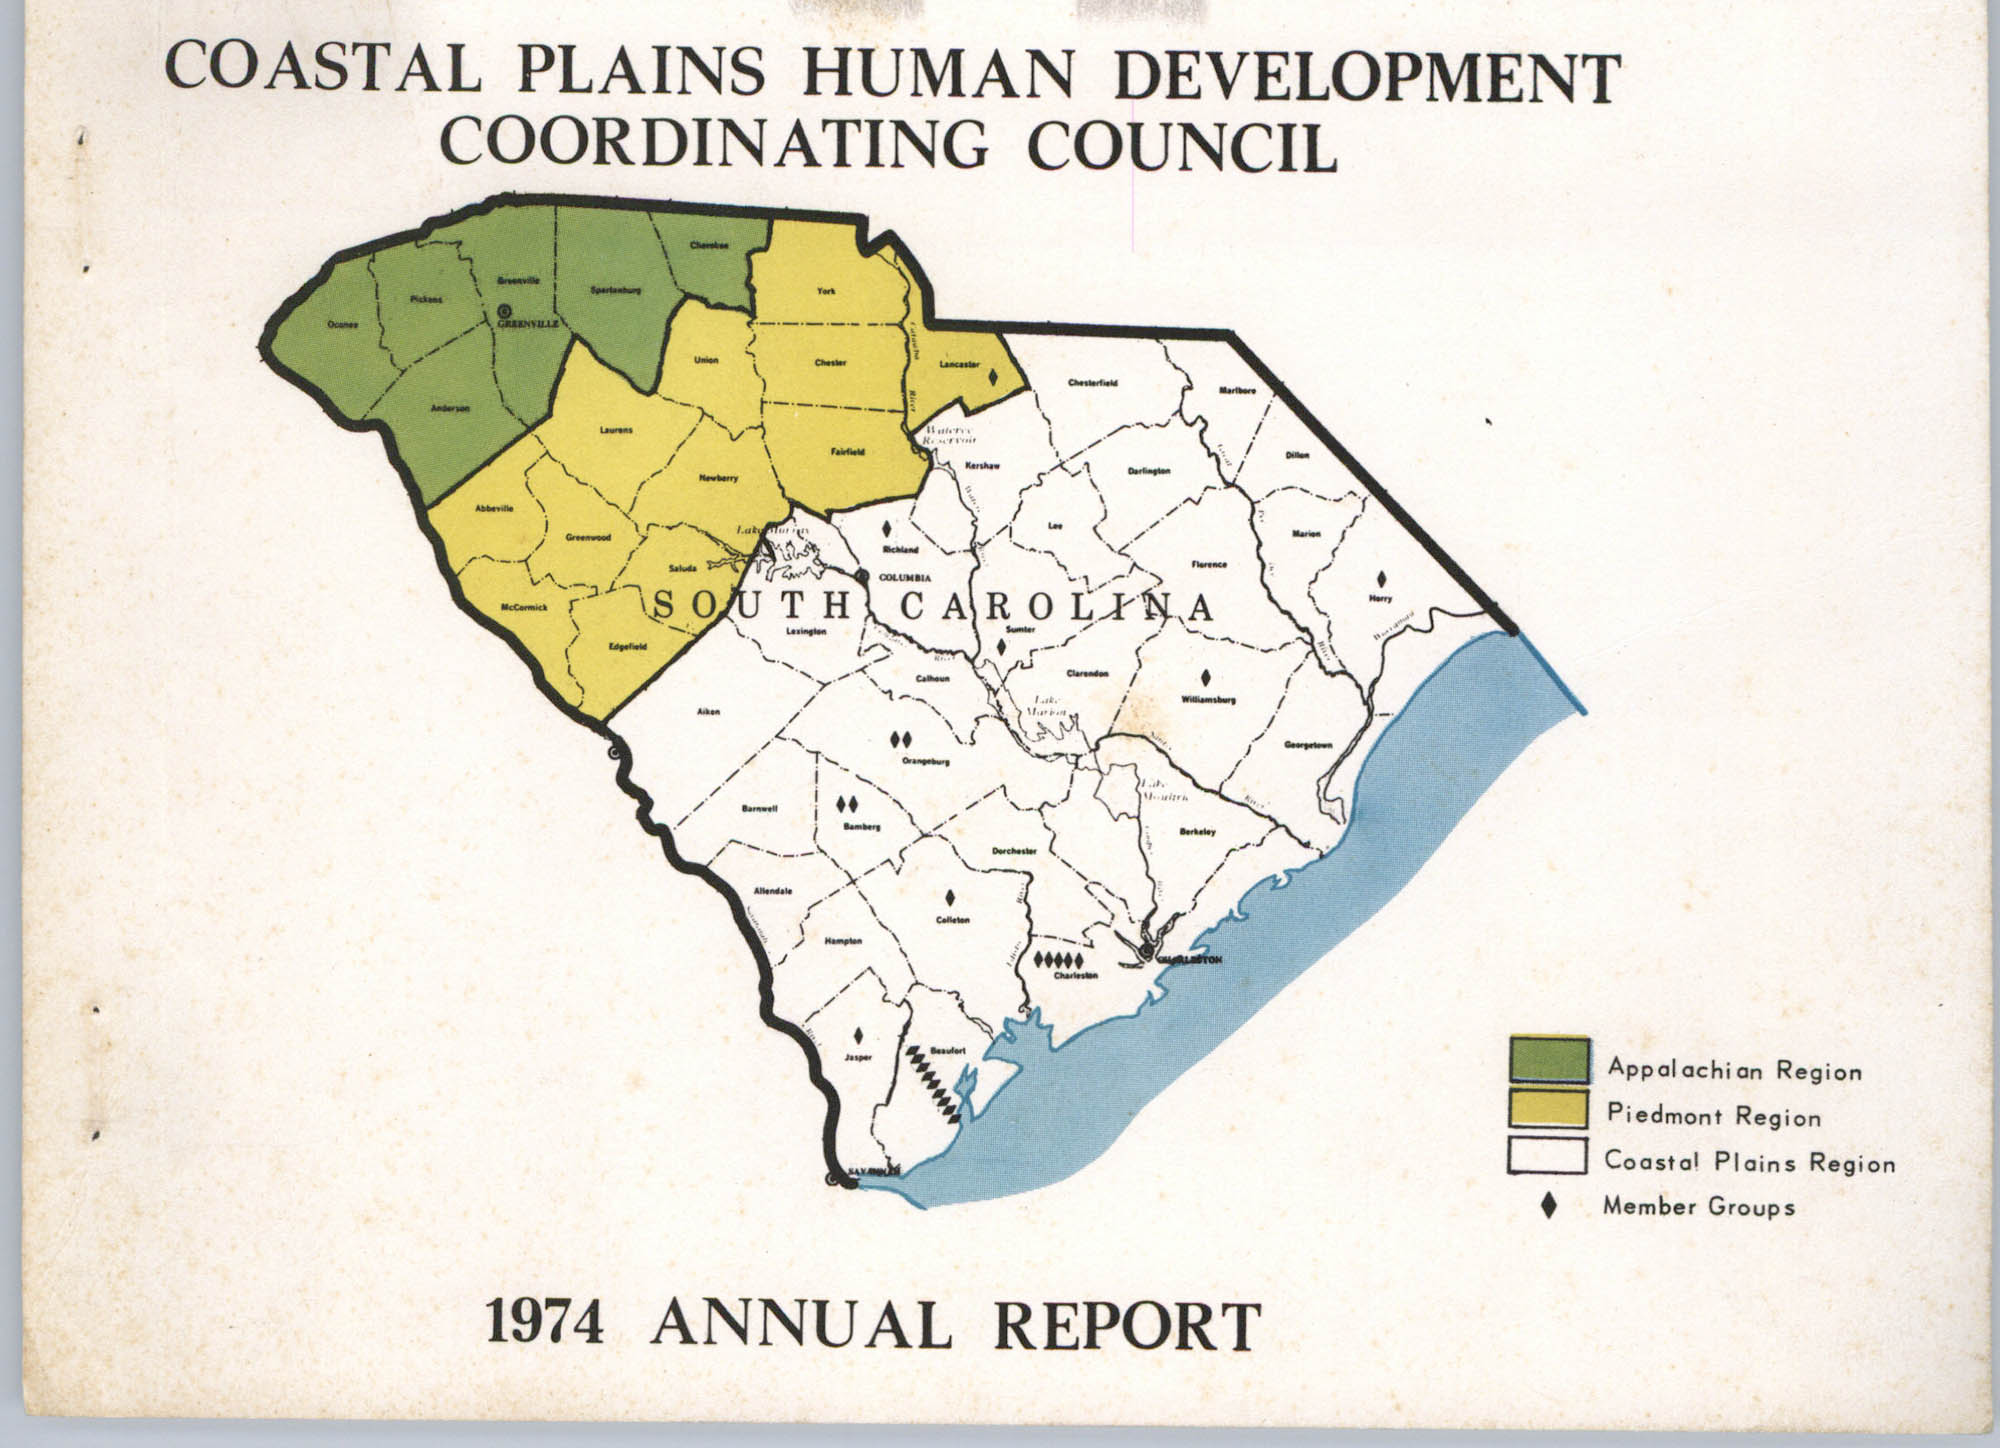 Coastal Plains Human Development Coordinating Council, 1974 Annual Report, Front Cover Exterior